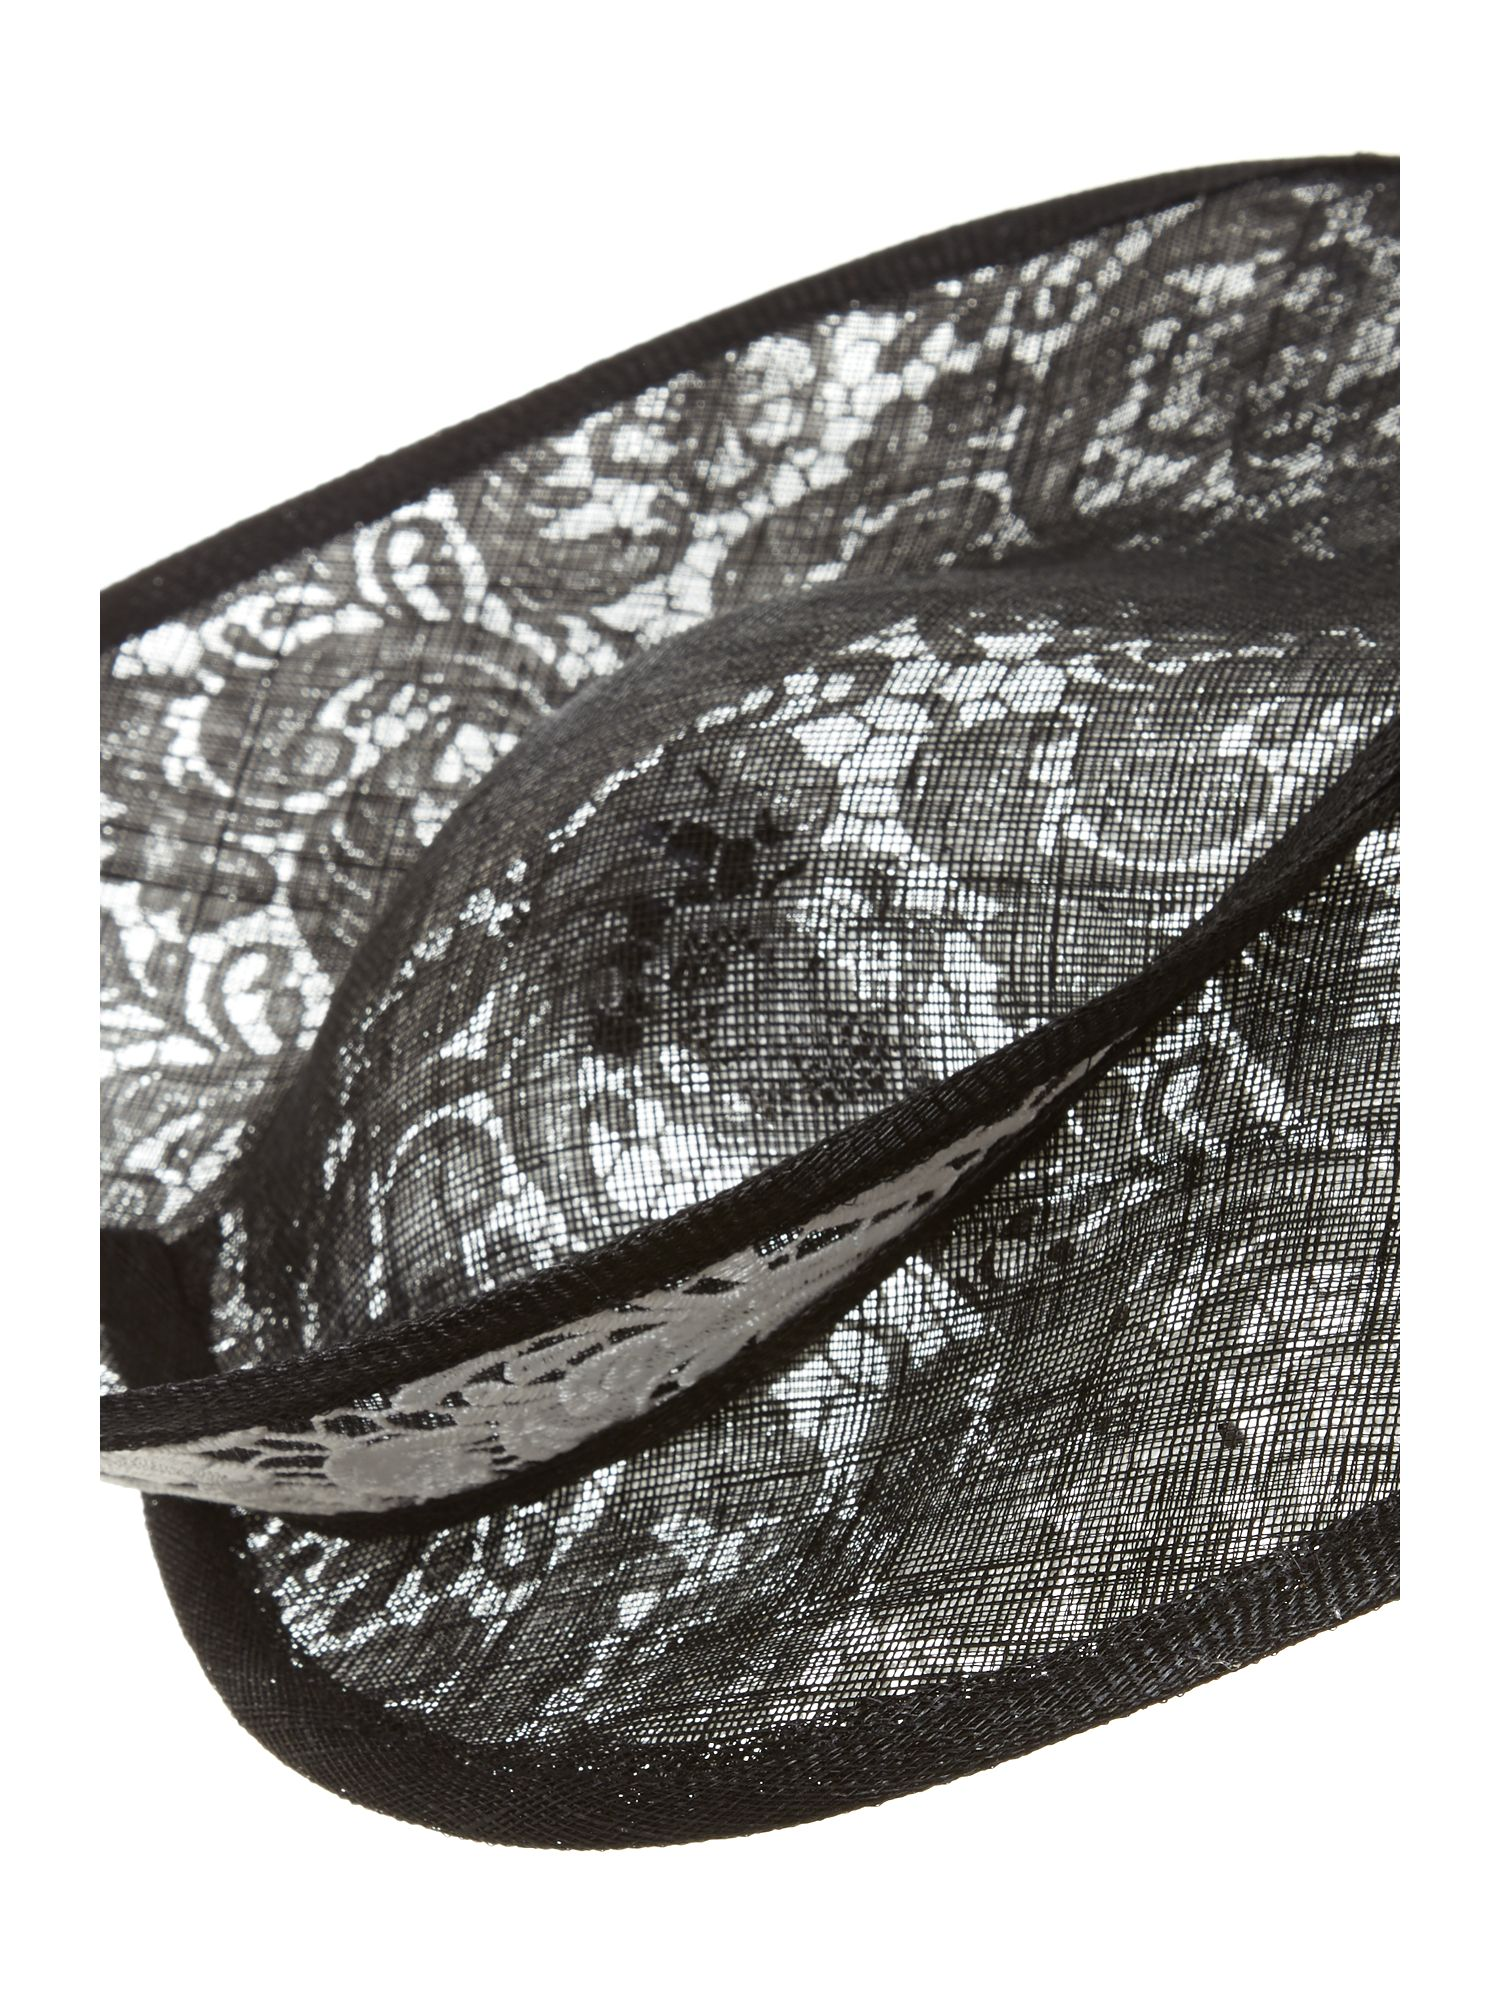 Goodwood curved saucer with lace